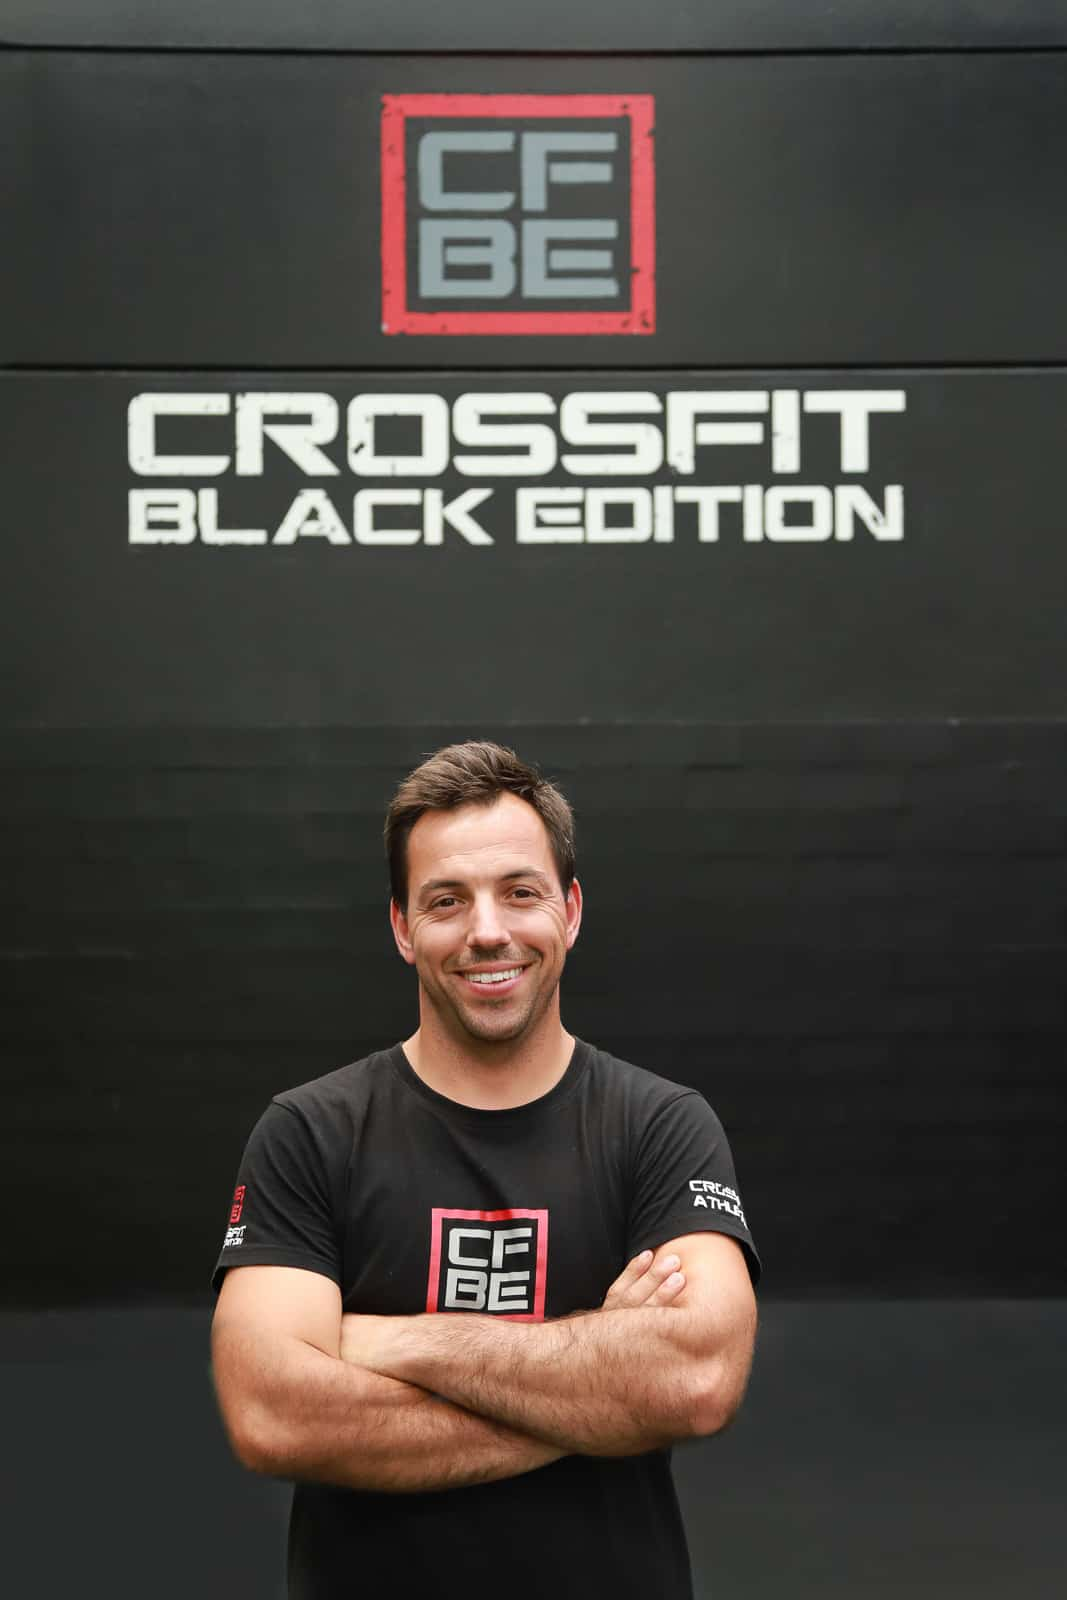 Joao Venceslau Coach at CrossFit Black Edition